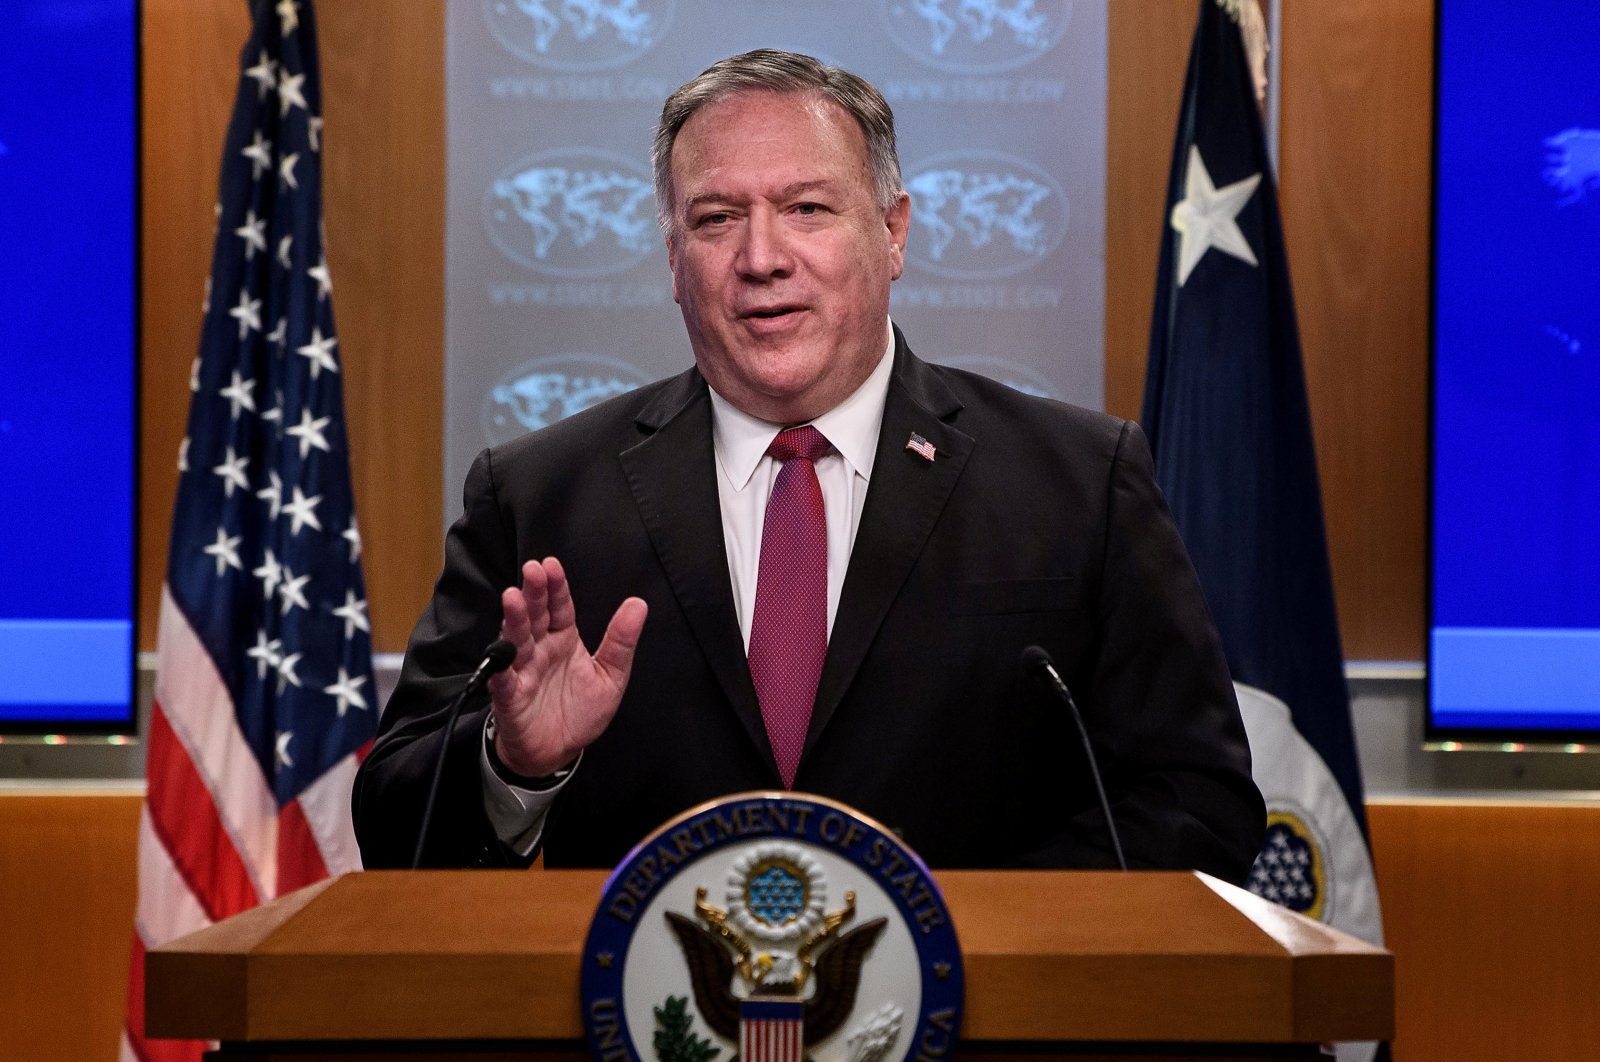 U.S. Secretary of State Mike Pompeo speaks at a news conference at the State Department in Washington, DC, U.S. October 21, 2020. (Reuters Photo)